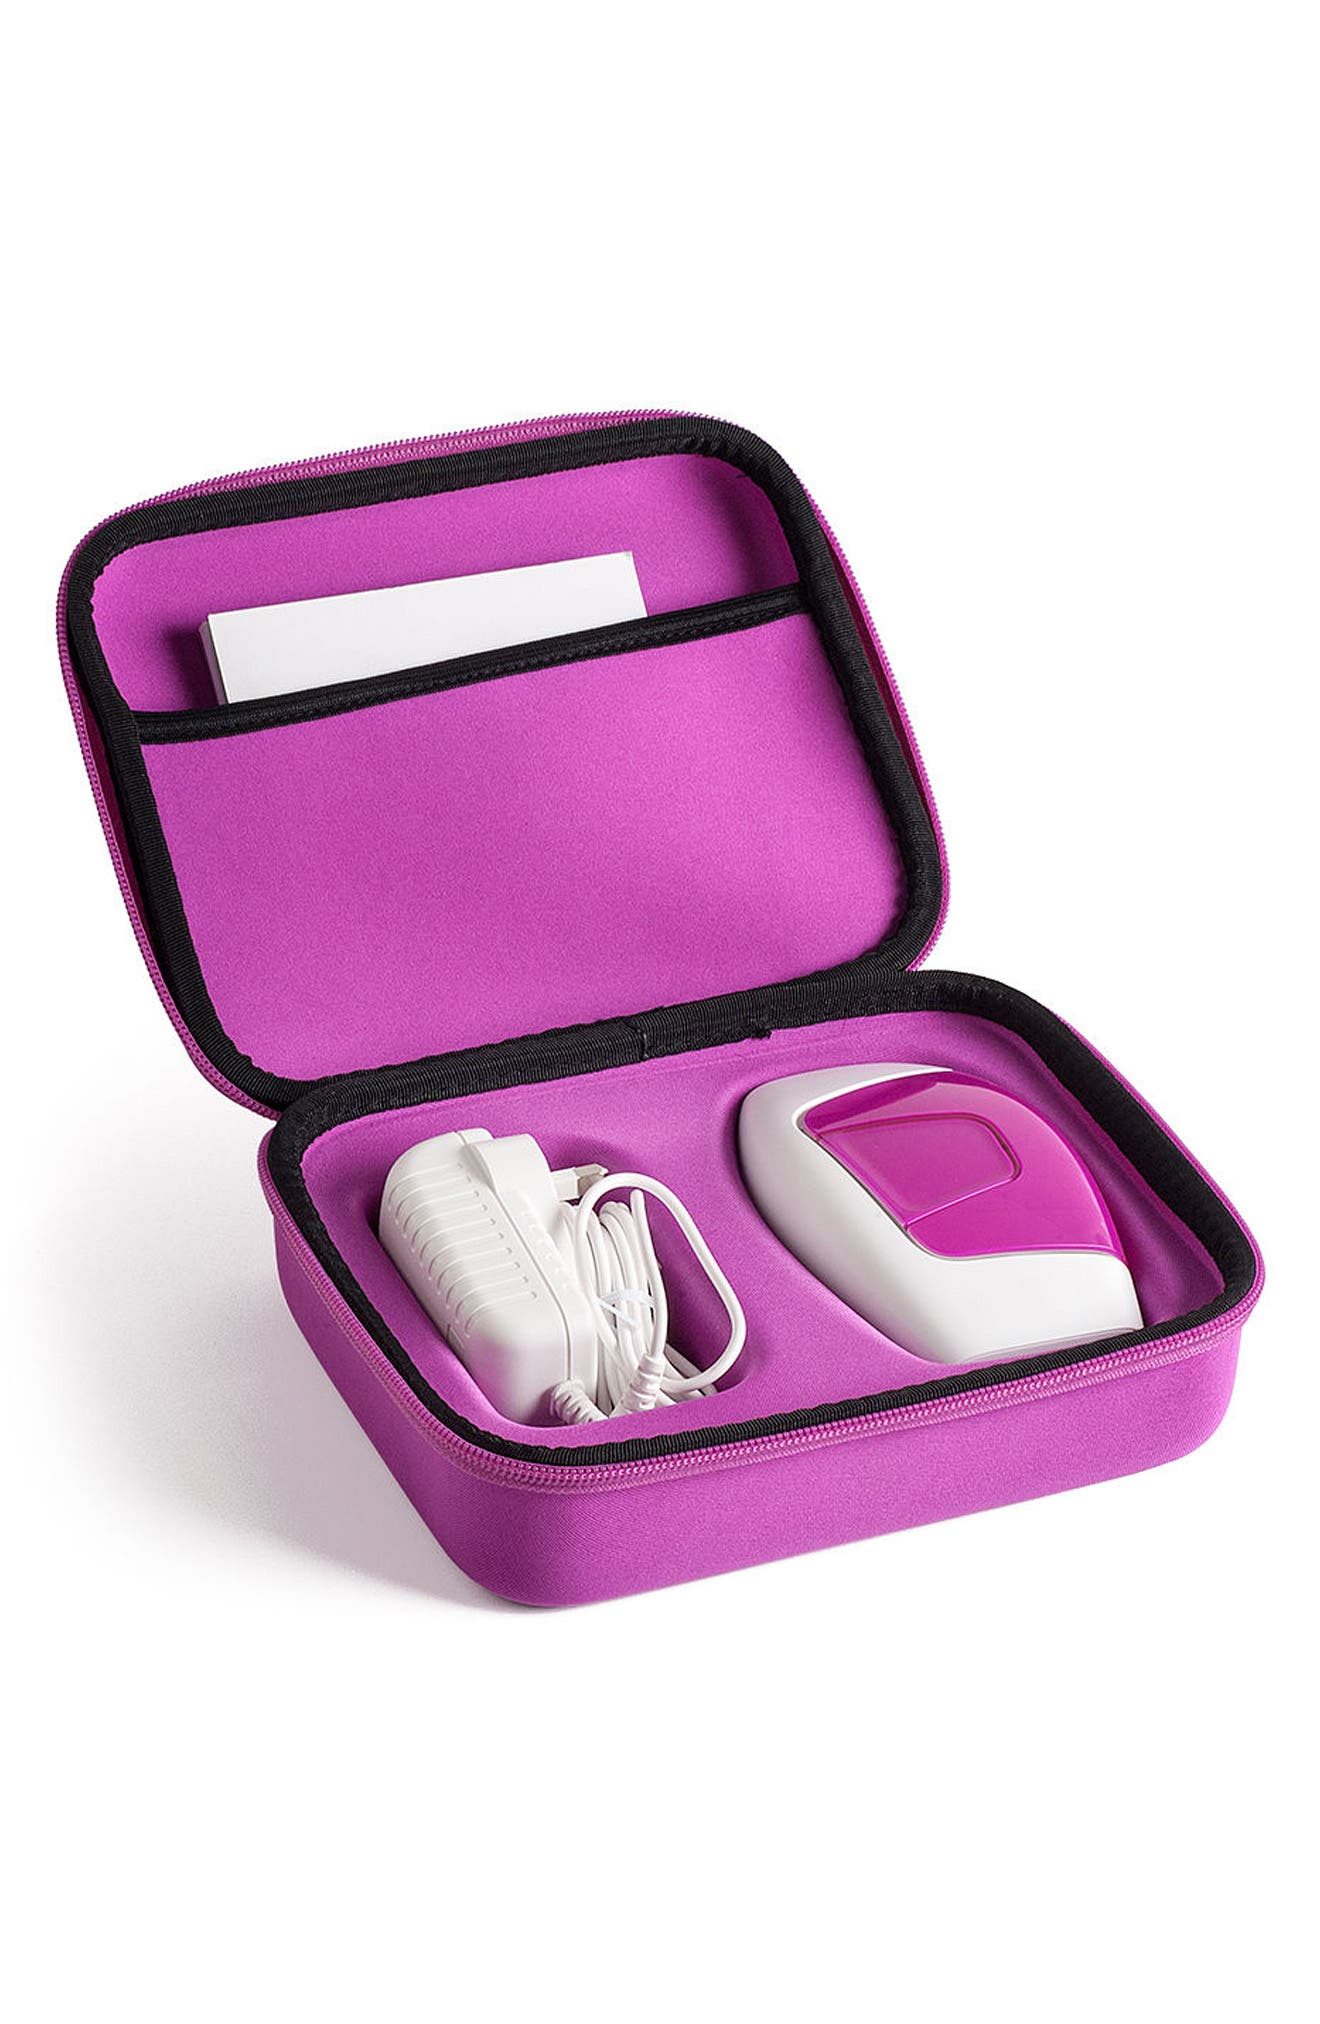 Flash&Go Compact Hair Removal Device,                             Alternate thumbnail 3, color,                             NO COLOR